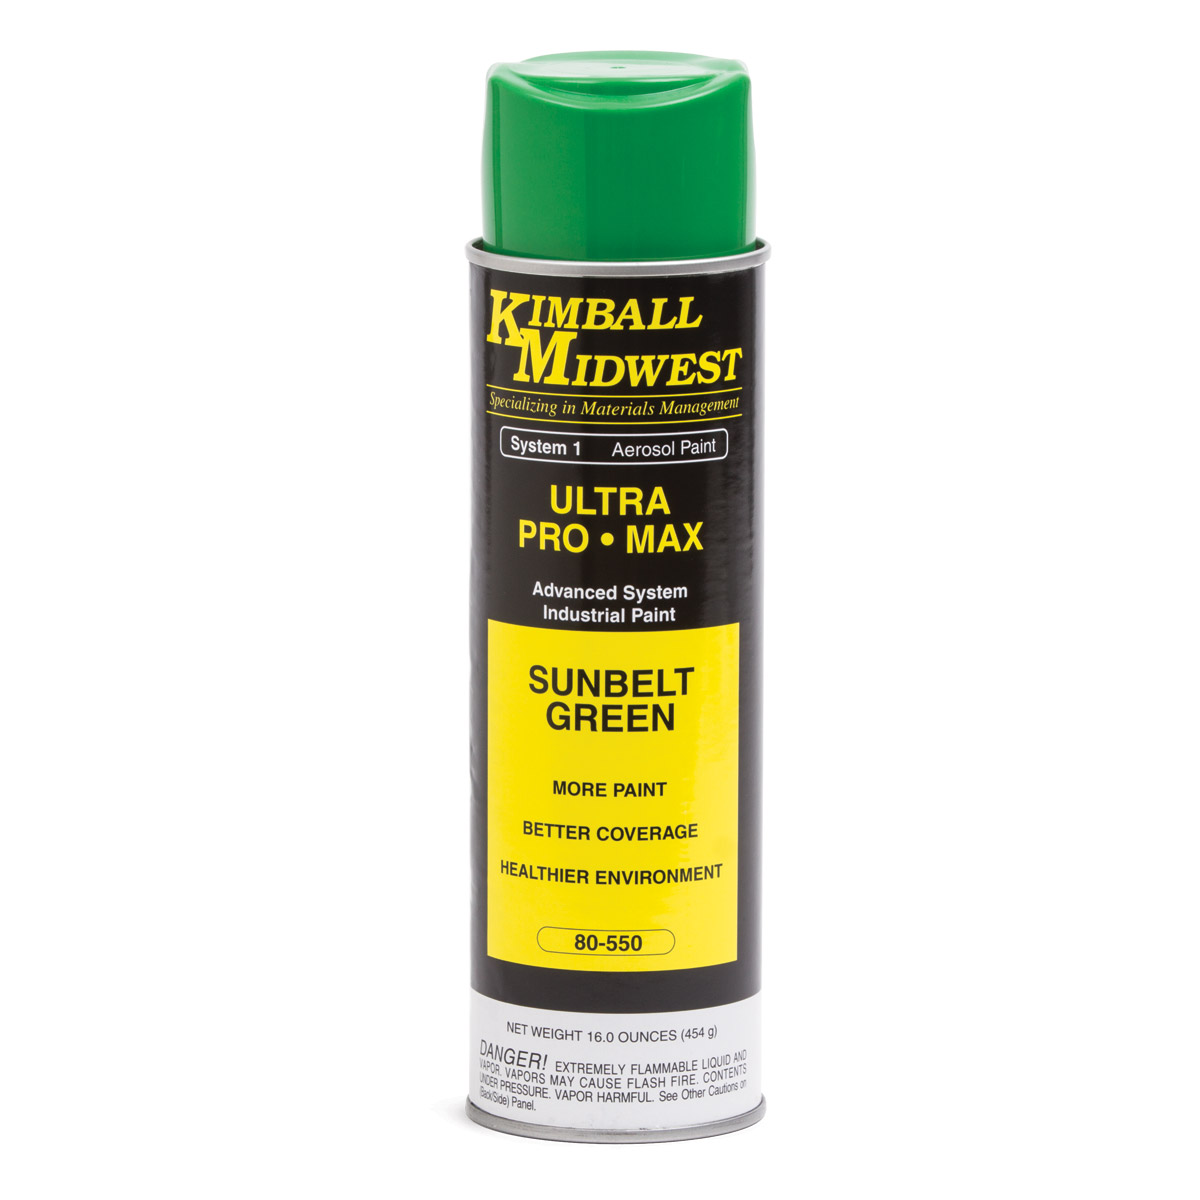 Sunbelt Green Ultra Pro Max Paint Kimball Midwest